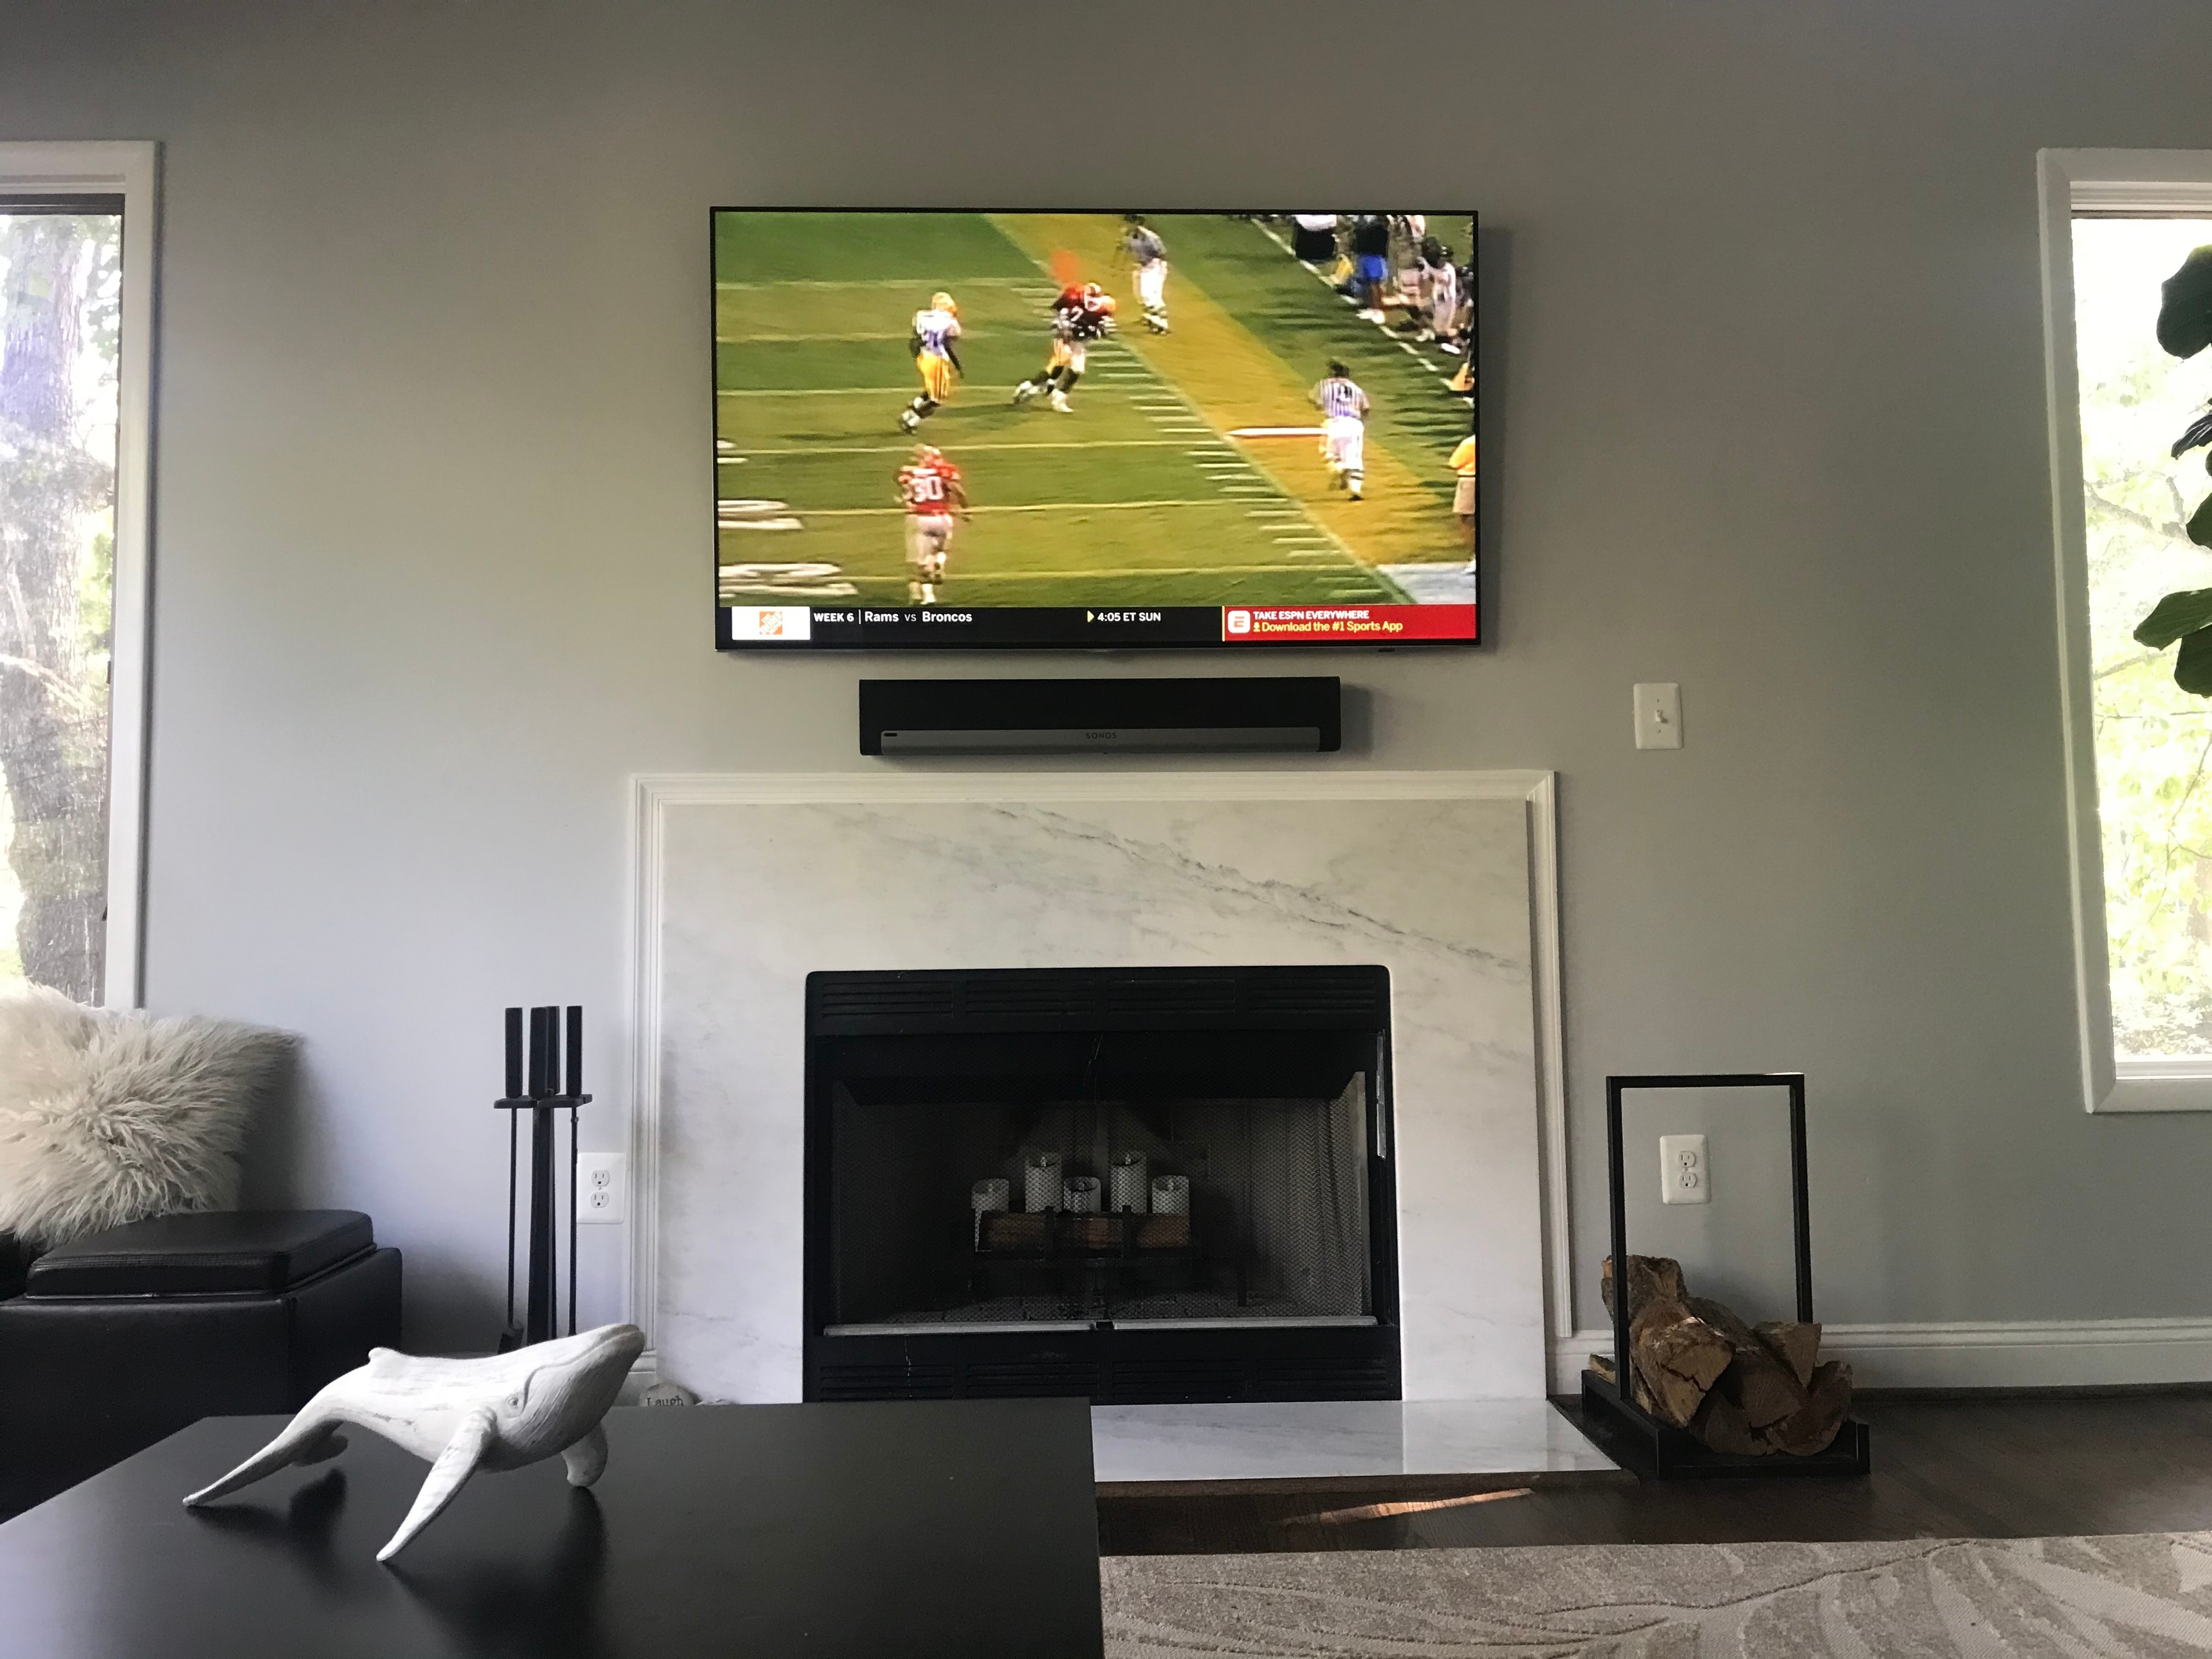 Advice On Playbar Placement Can It Go Above Tv Sonos Community